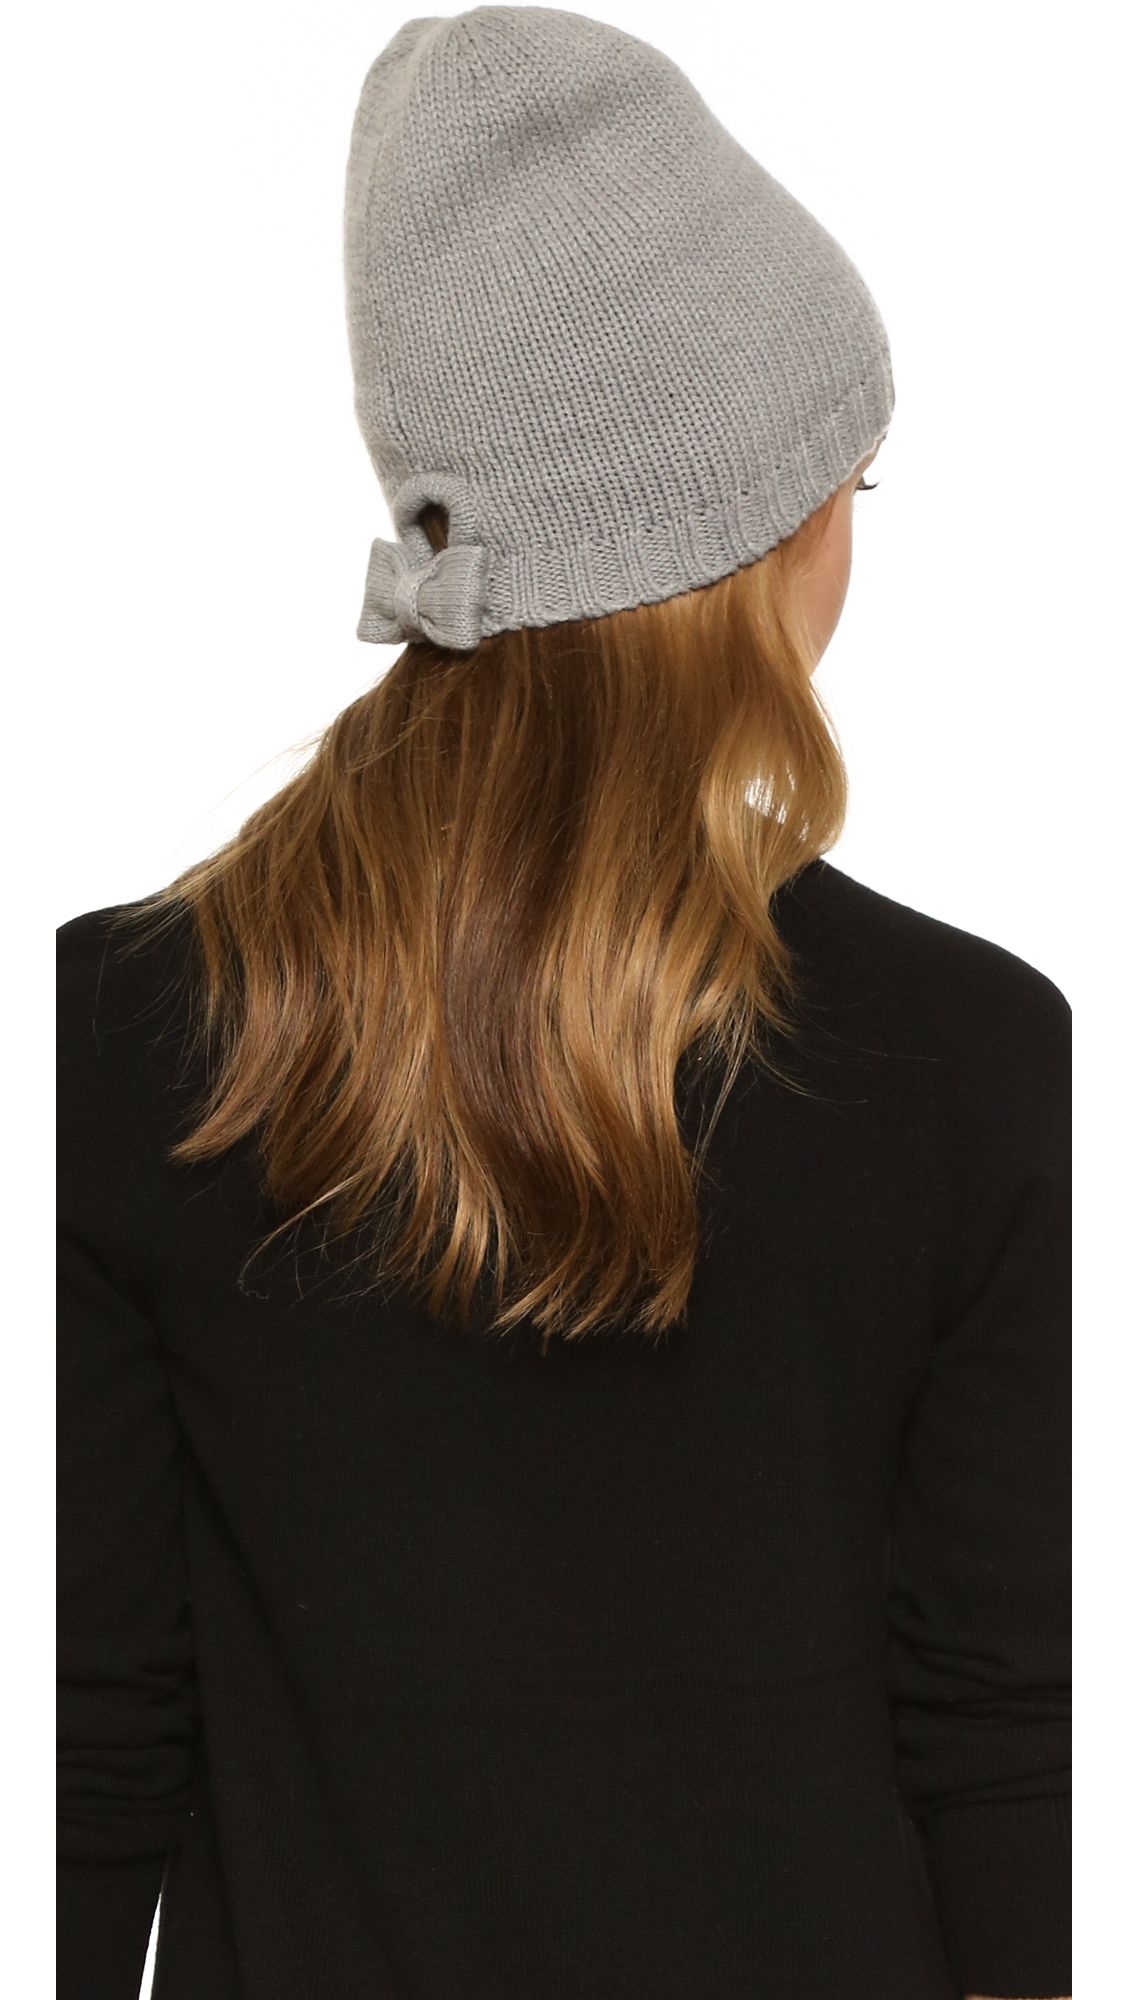 Kate Spade Gathered Bow Beanie in Gray - Lyst 94cf86b1d47